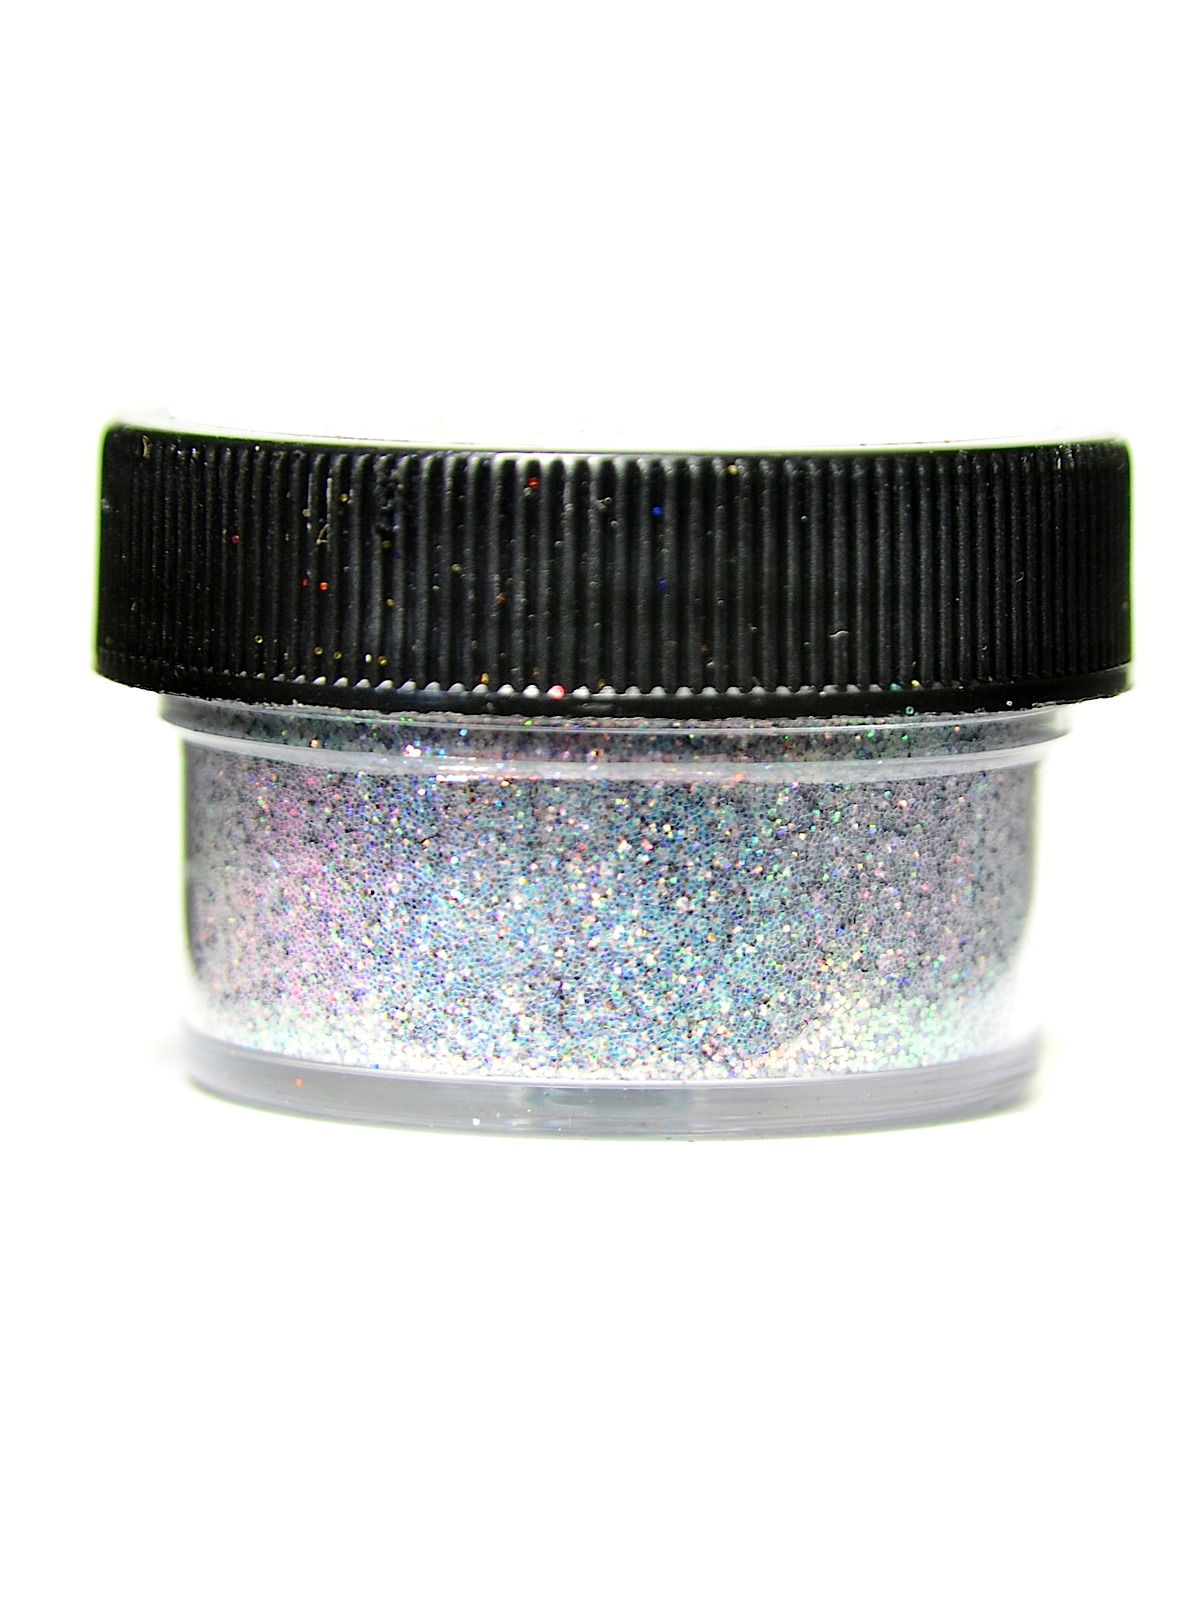 Ultrafine Transparent Glitter Fog 1 2 Oz. Jar